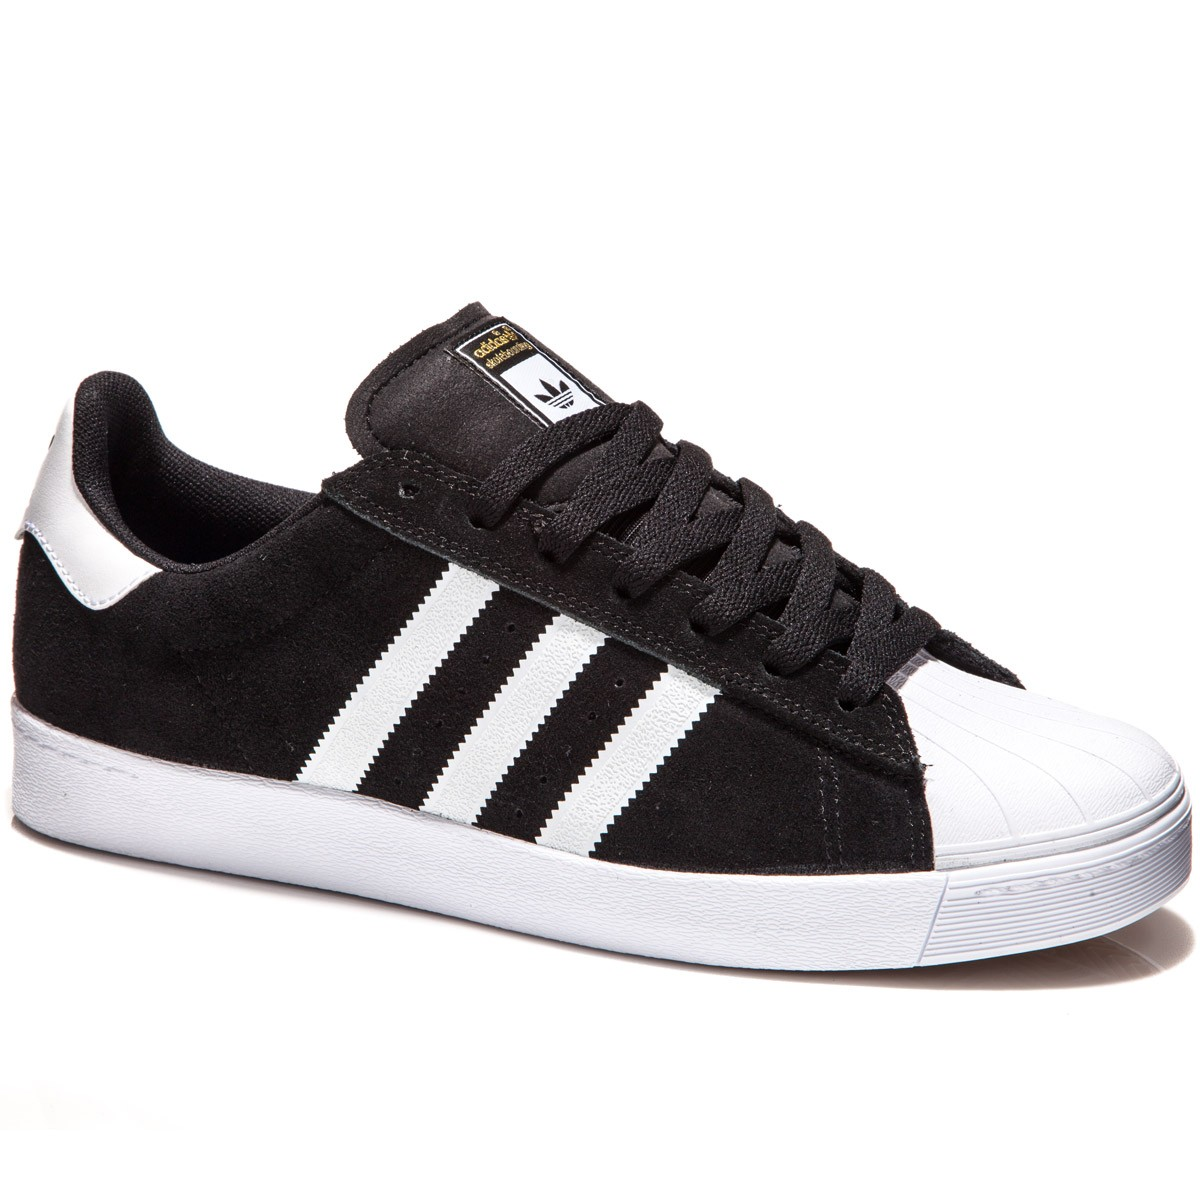 adidas Superstar Medium (D, M) Width Walking Shoes for Men